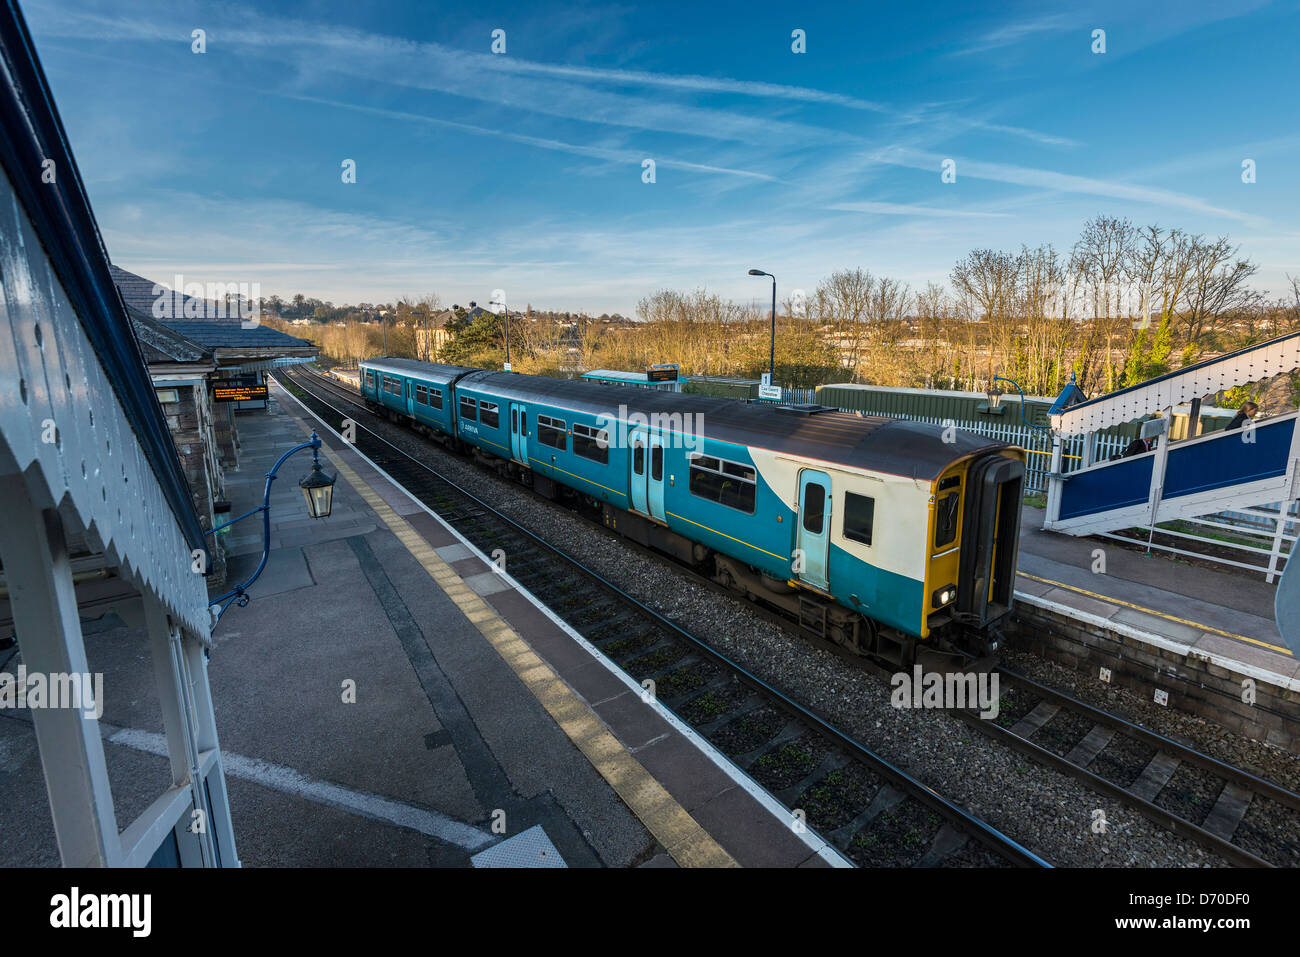 COMMUTER TRAIN AT CHEPSTOW RAILWAY STATION - Stock Image